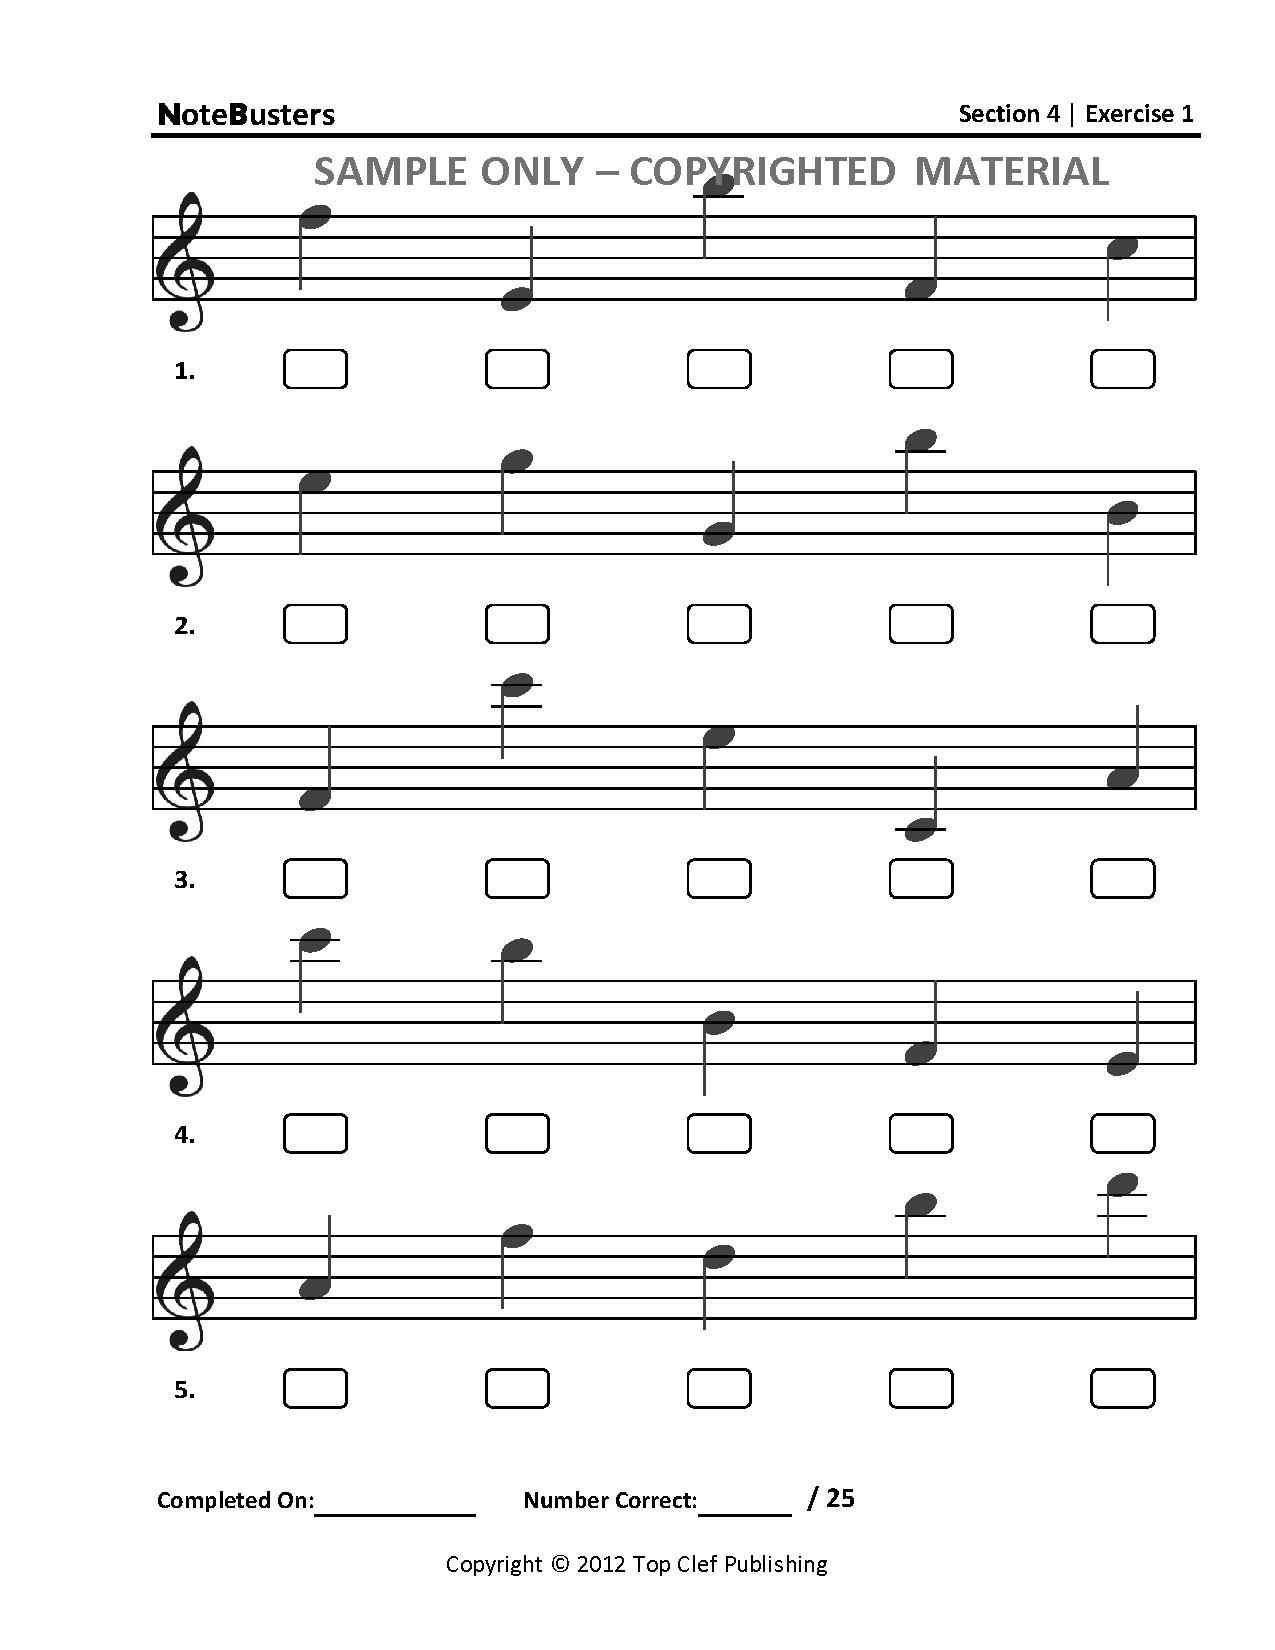 Worksheets Sight Reading Worksheets sample exercises notebusters note reading music workbook section4 sight sample